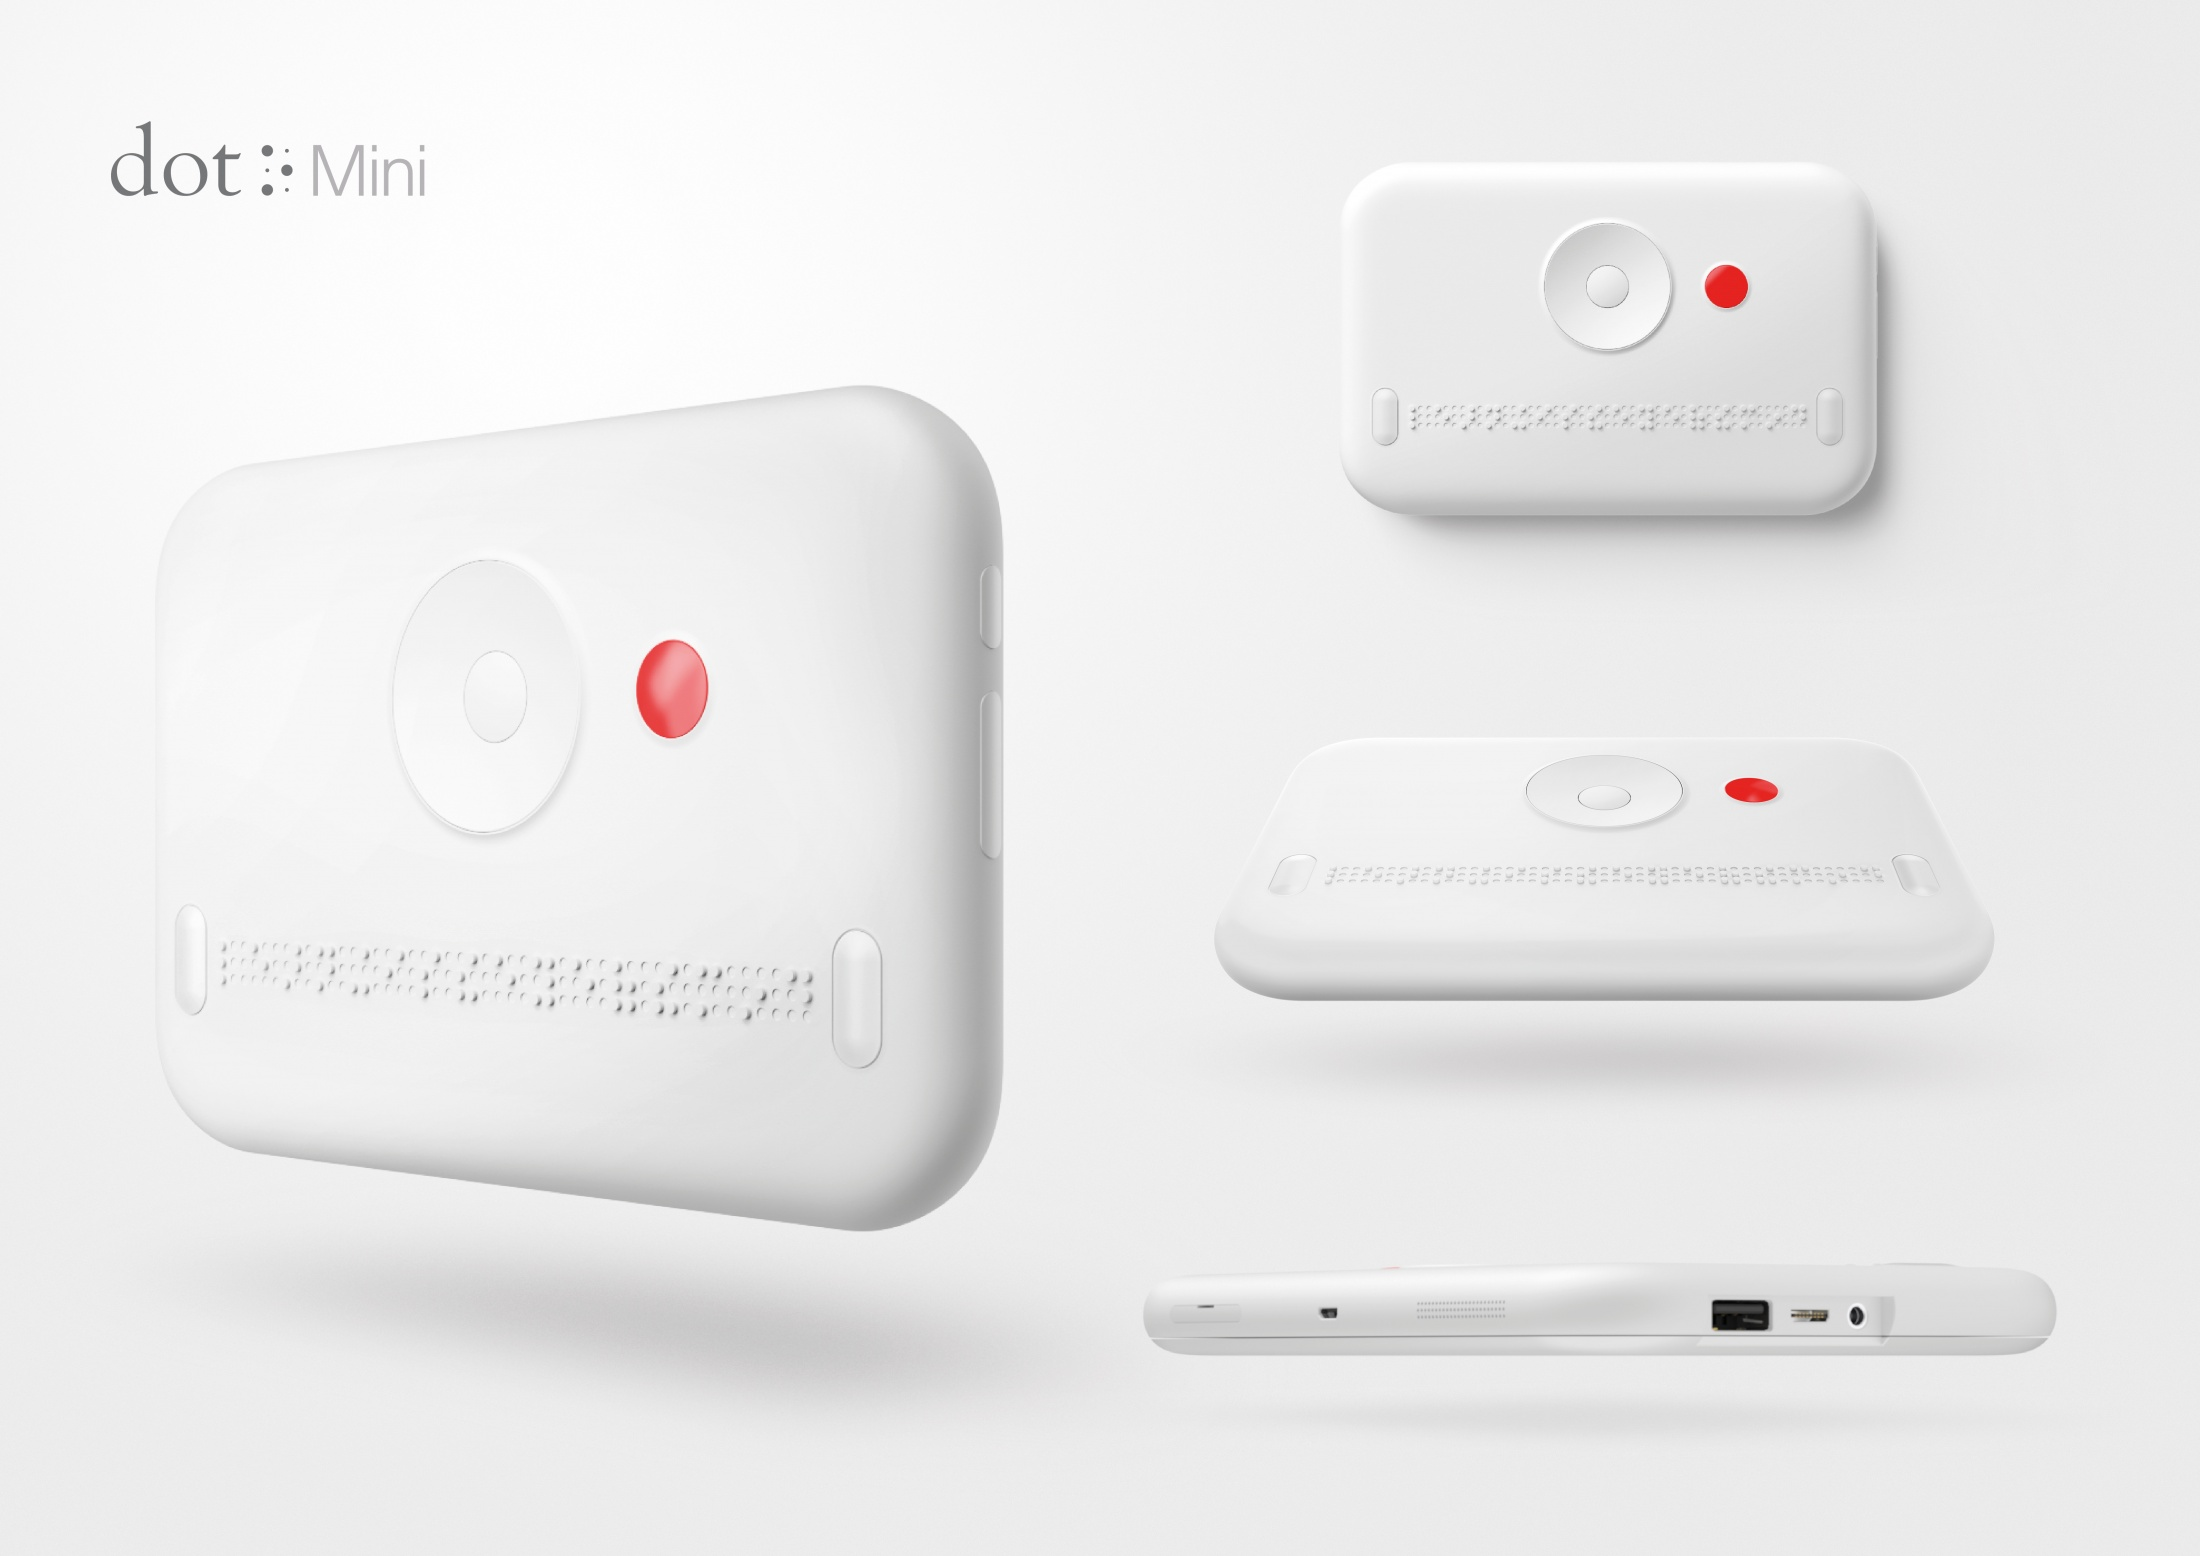 Thumbnail for Dot Mini. The First Smart Media Device for the Visually Impaired.